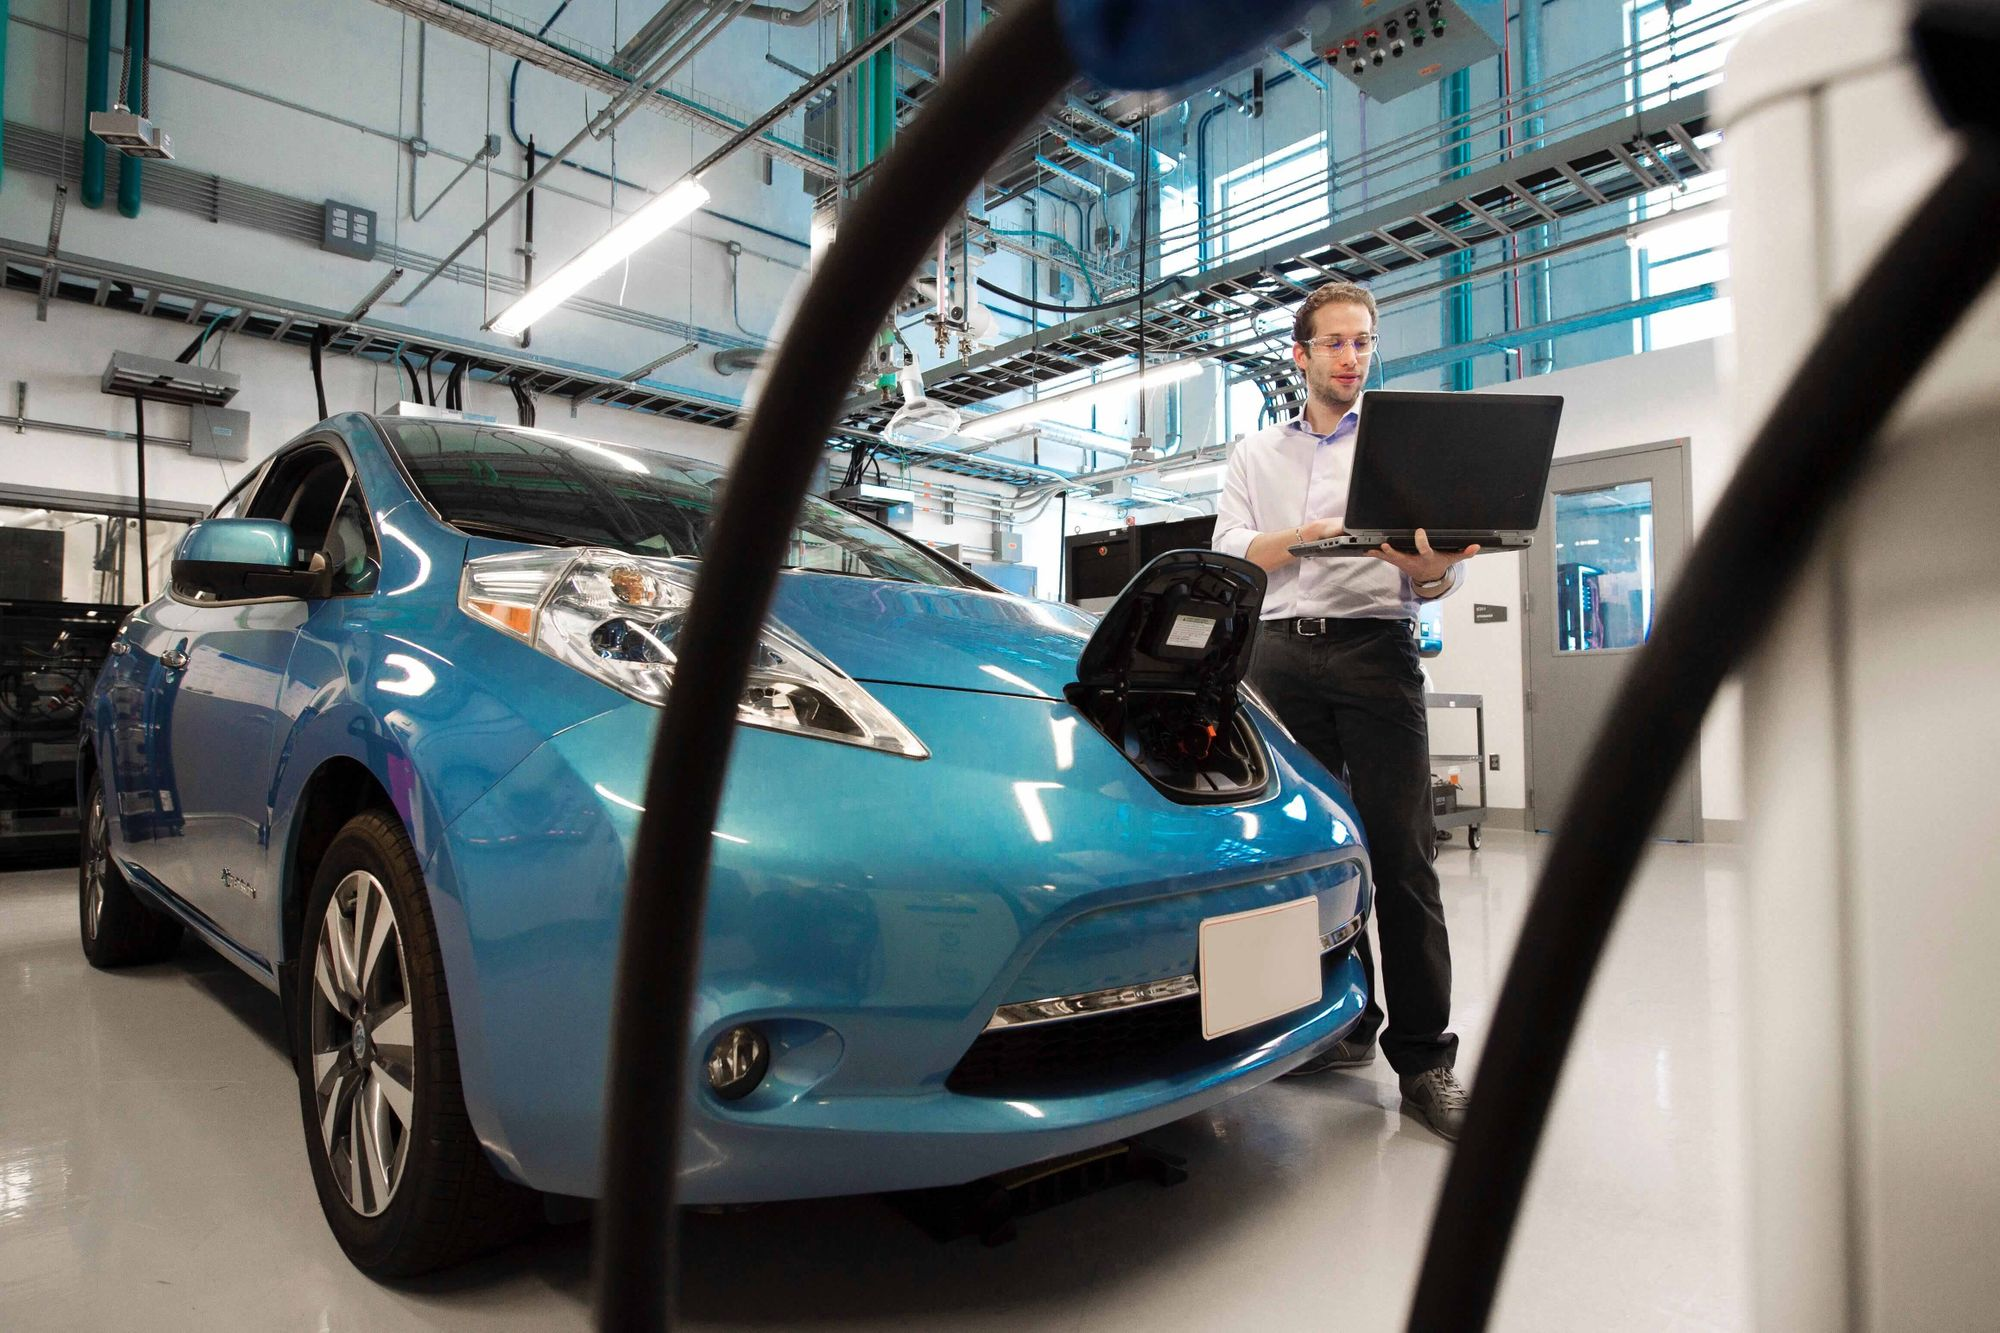 Blue electric car vehicle in a body repair shop